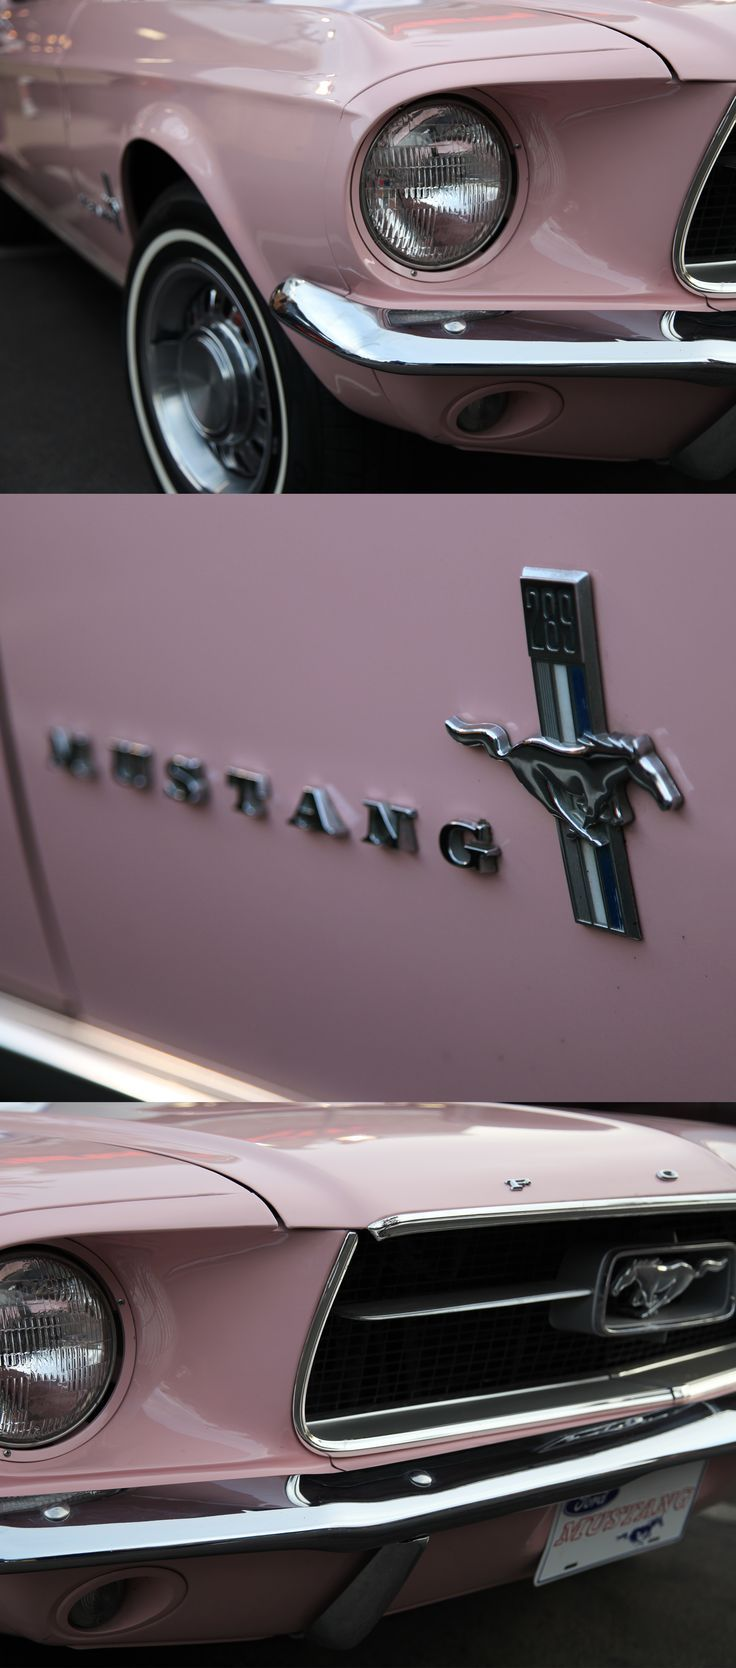 1967 Ford Mustang. Para mi chica.